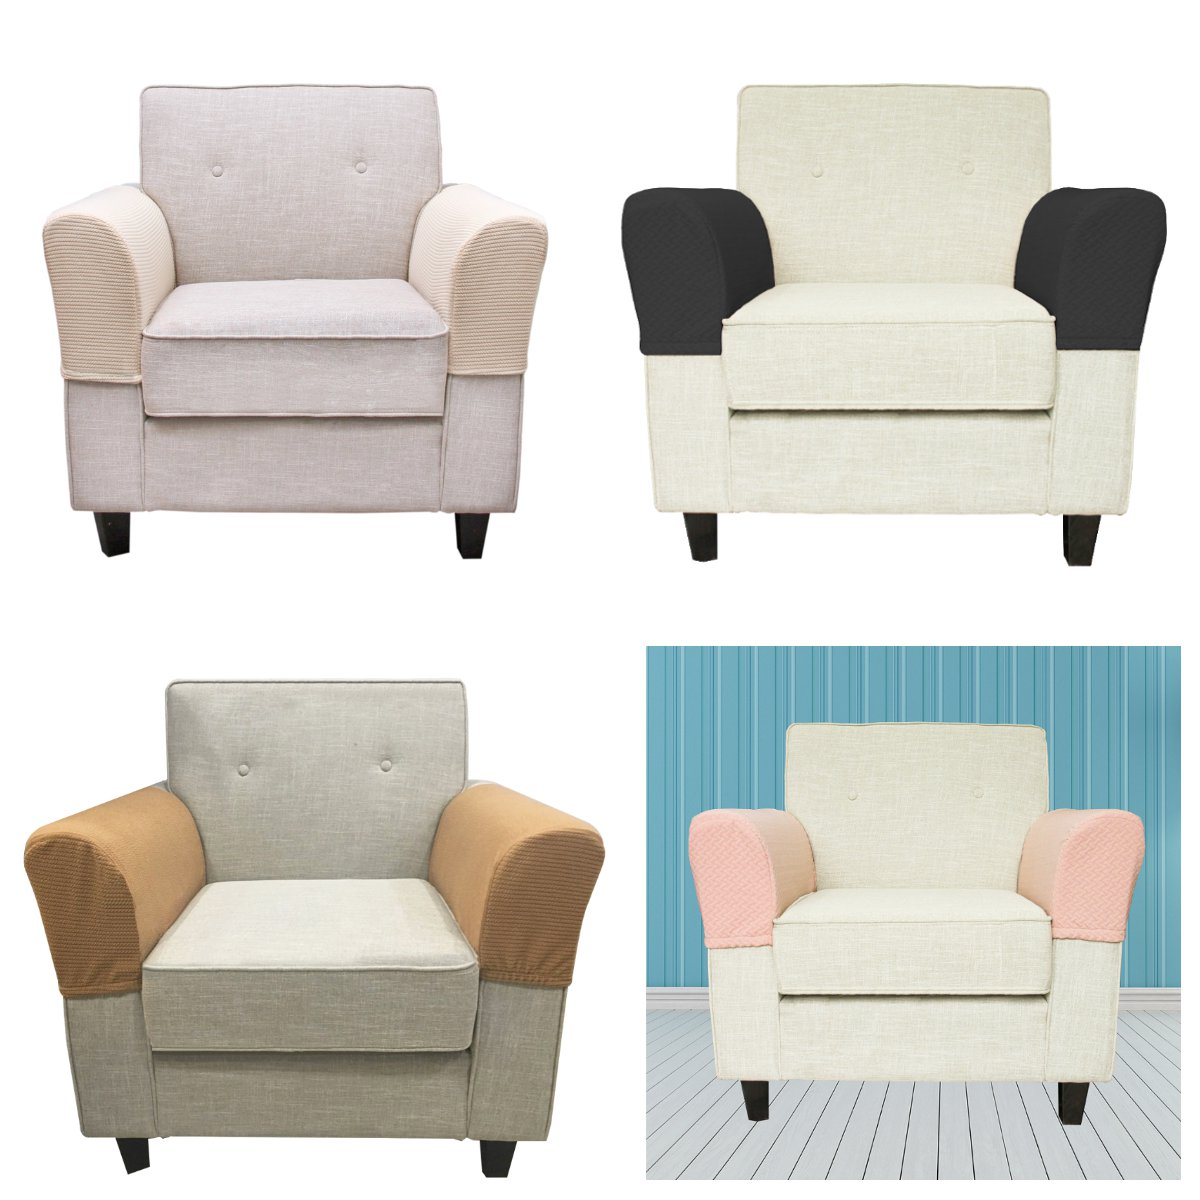 Cover s 2 pce Armchair Cover